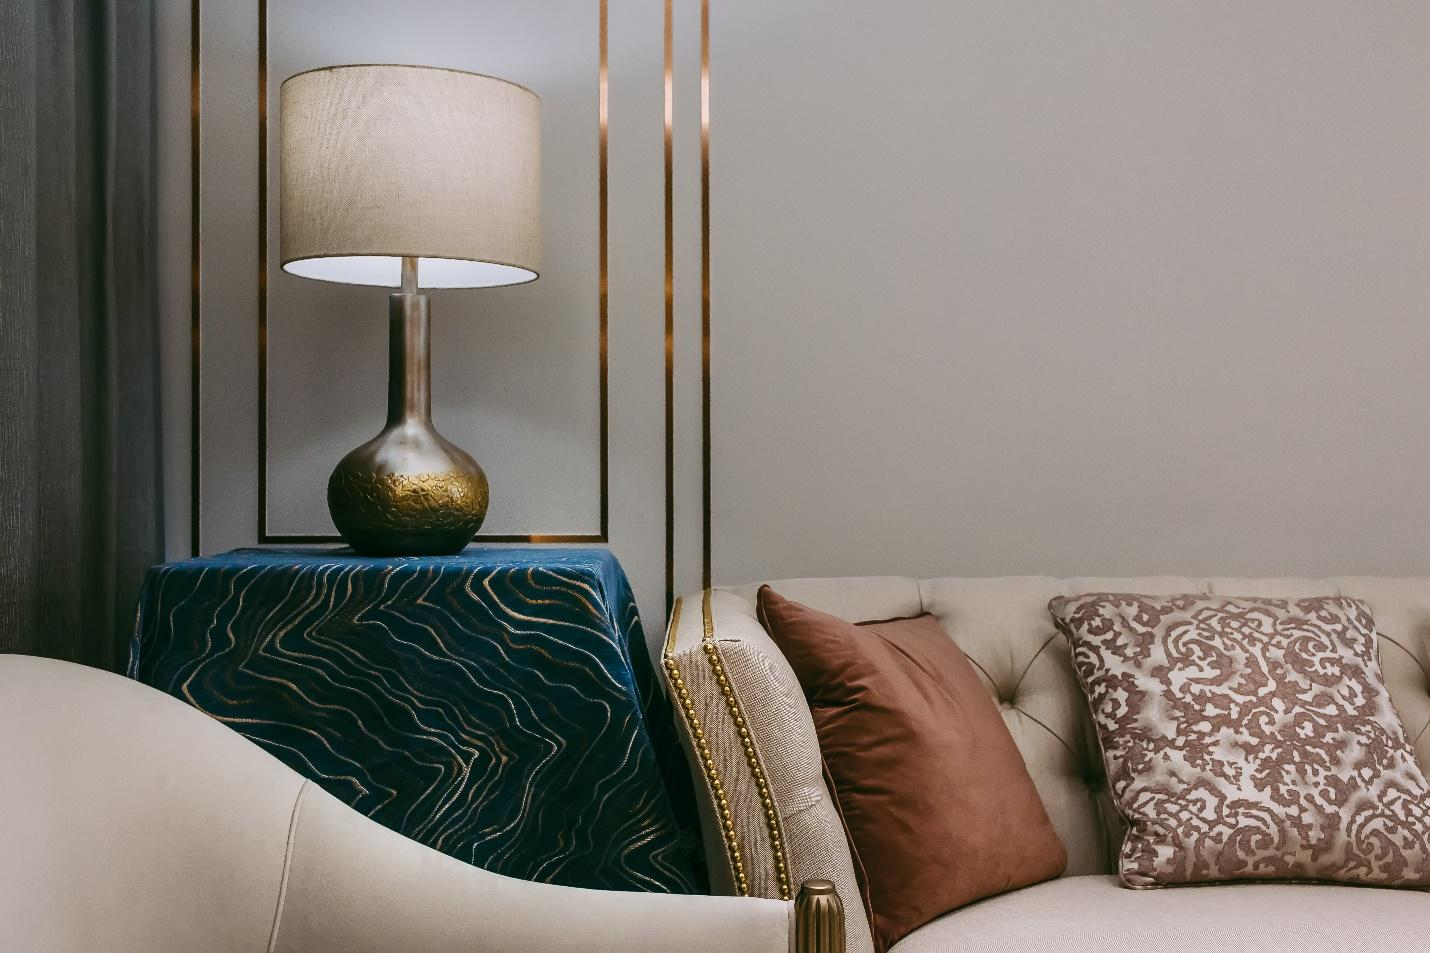 An elegant corner of a living room with a beautiful table lamp, showing one of the ways to decorate with traditional table lamps